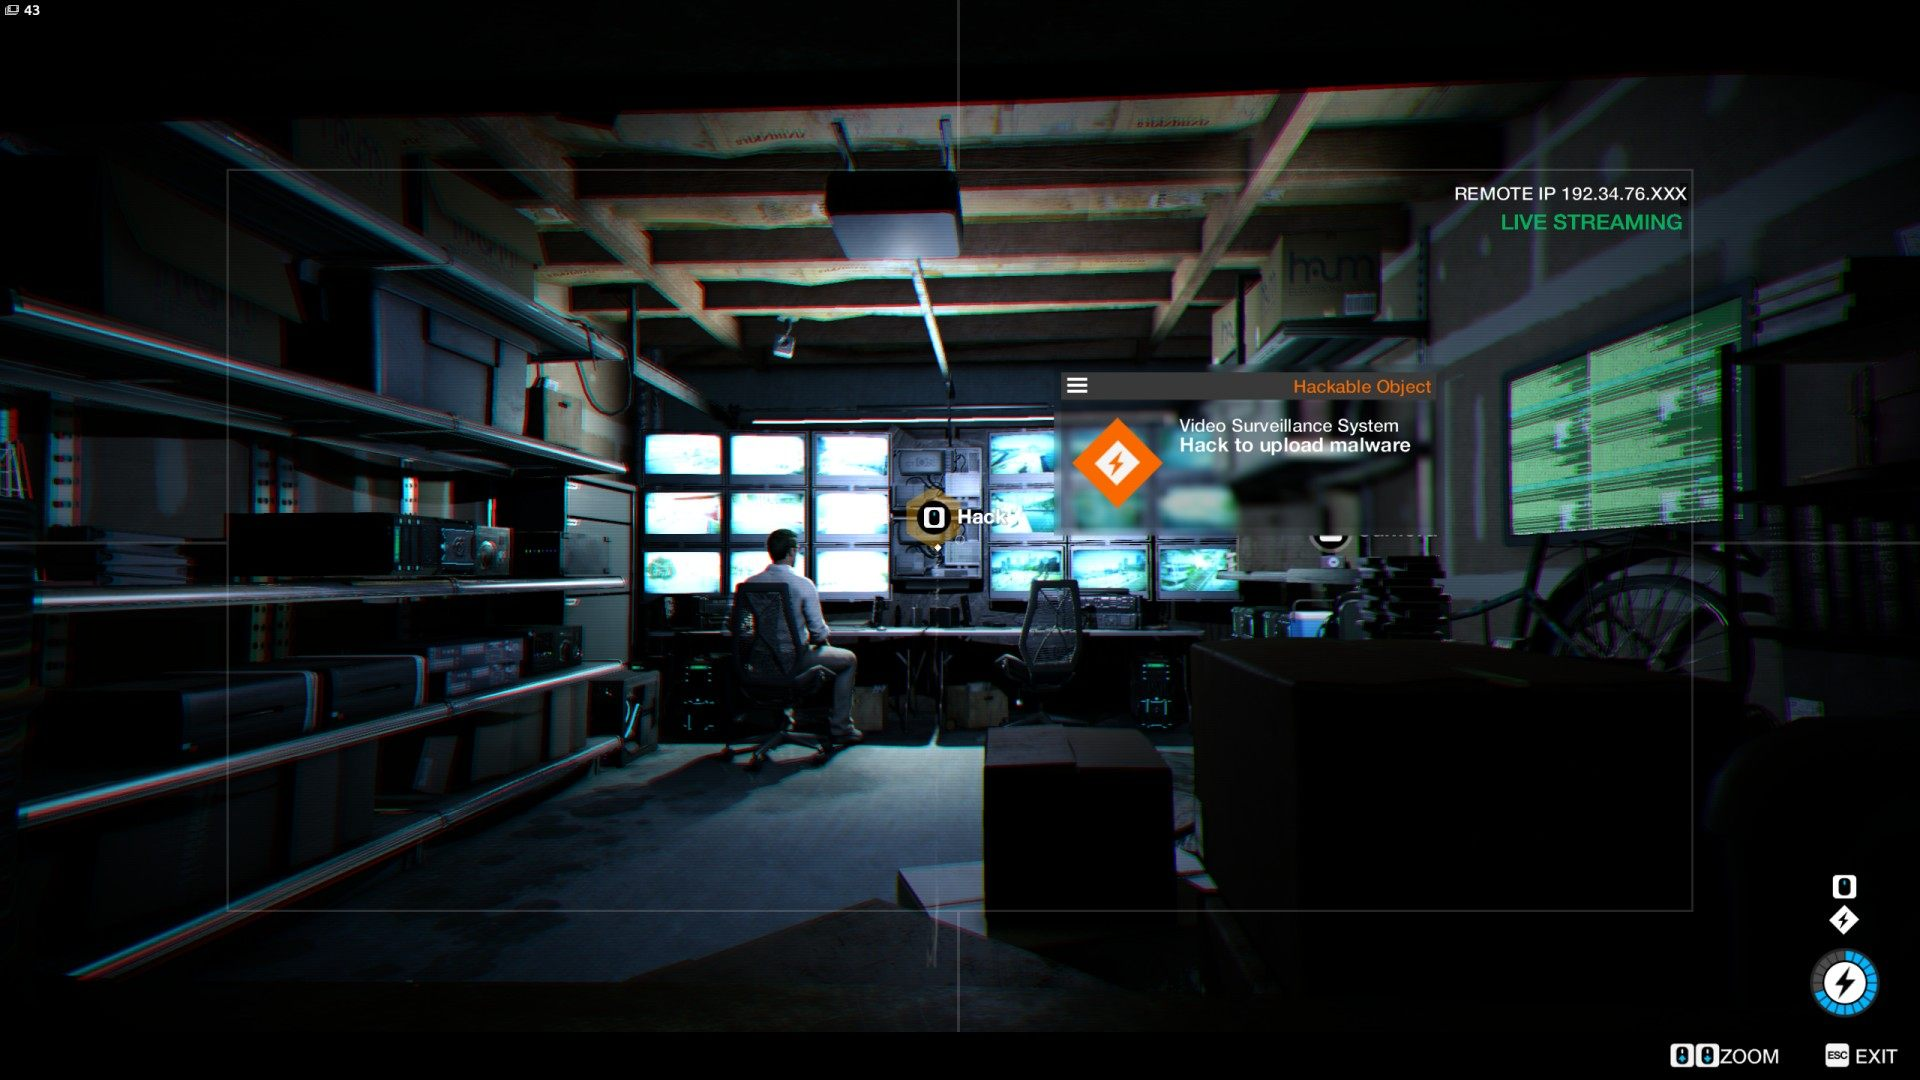 How To Hack Nsa Safe House Watch Dogs